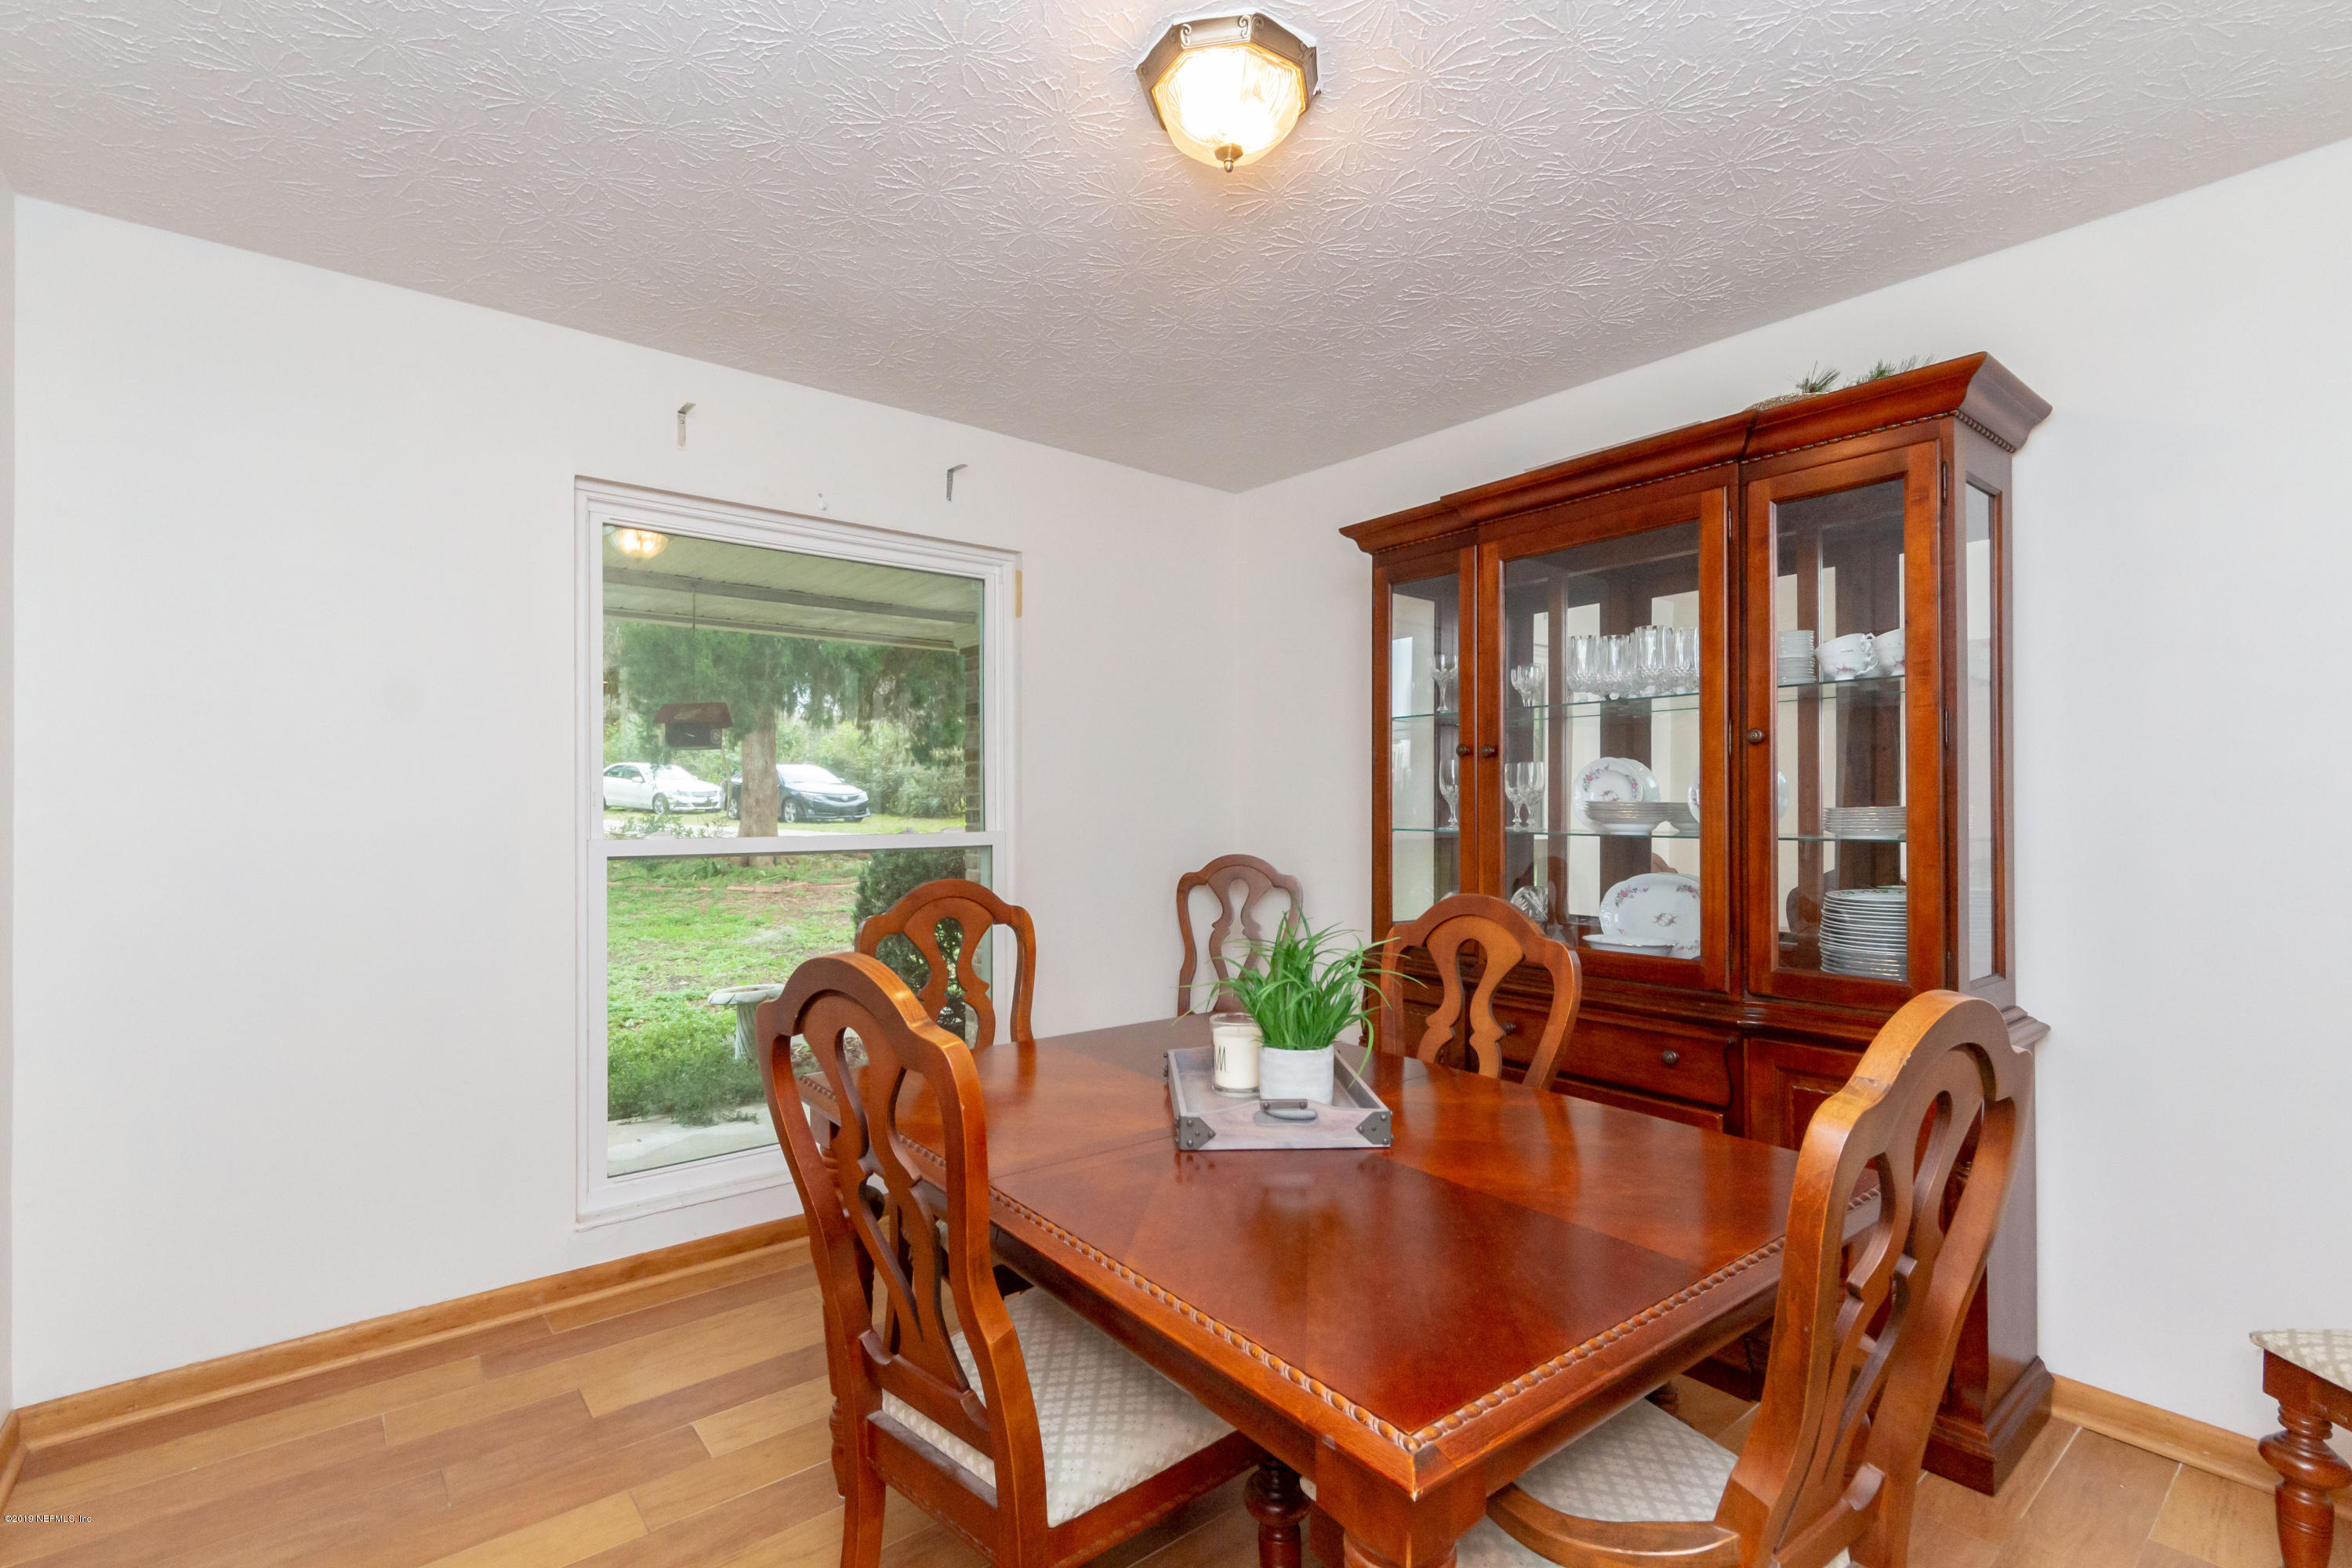 881 ARTHUR MOORE, GREEN COVE SPRINGS, FLORIDA 32043, 3 Bedrooms Bedrooms, ,3 BathroomsBathrooms,Residential - single family,For sale,ARTHUR MOORE,979777